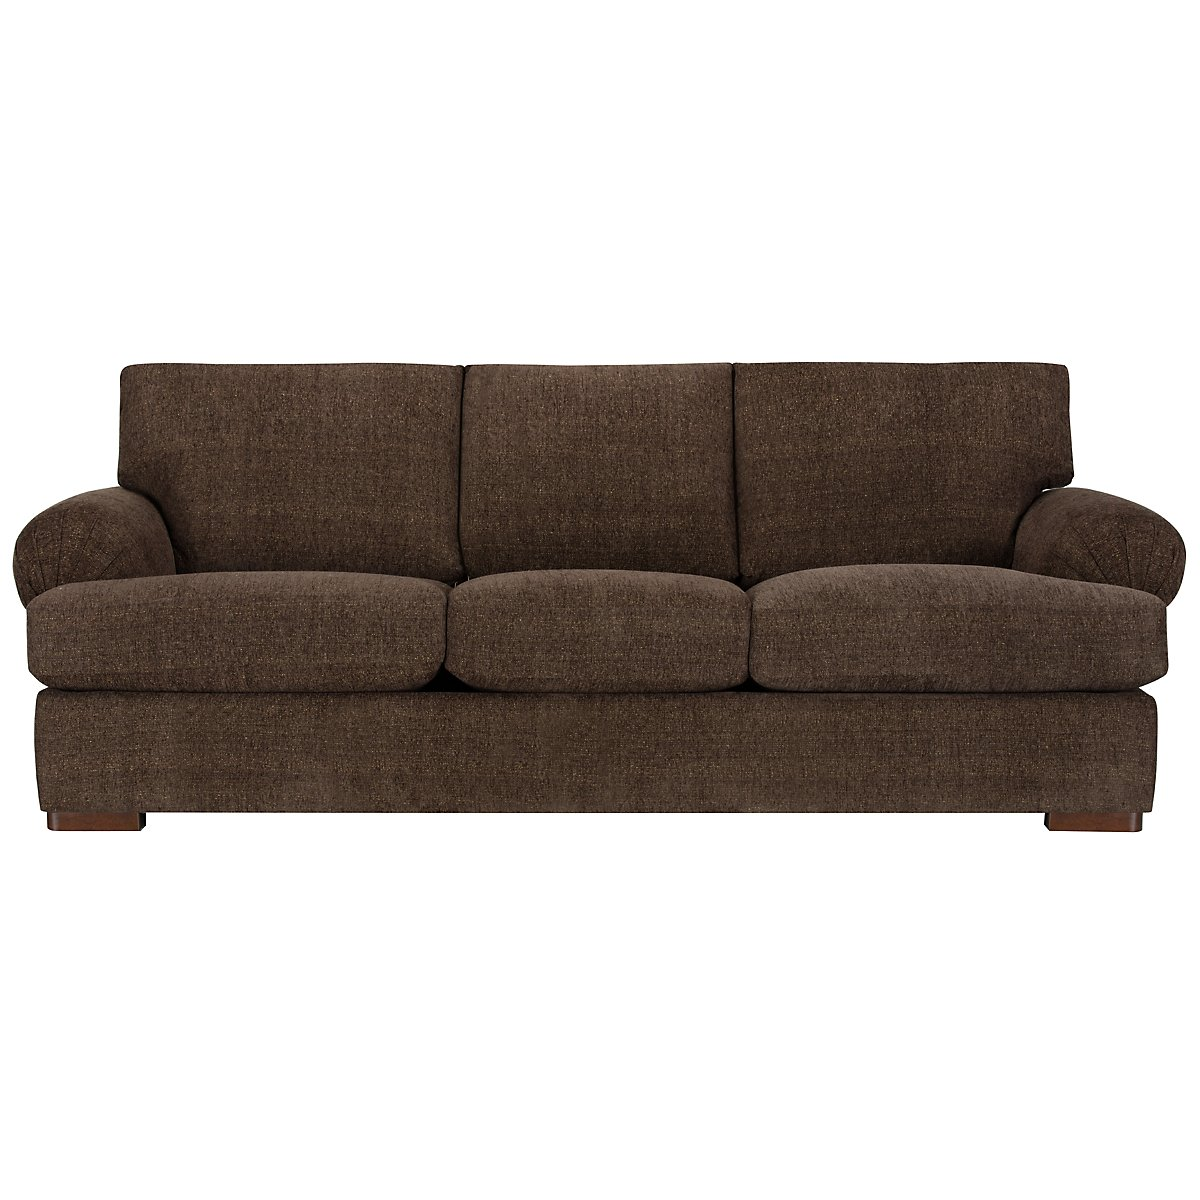 City furniture belair dk brown microfiber sofa Brown microfiber couch and loveseat